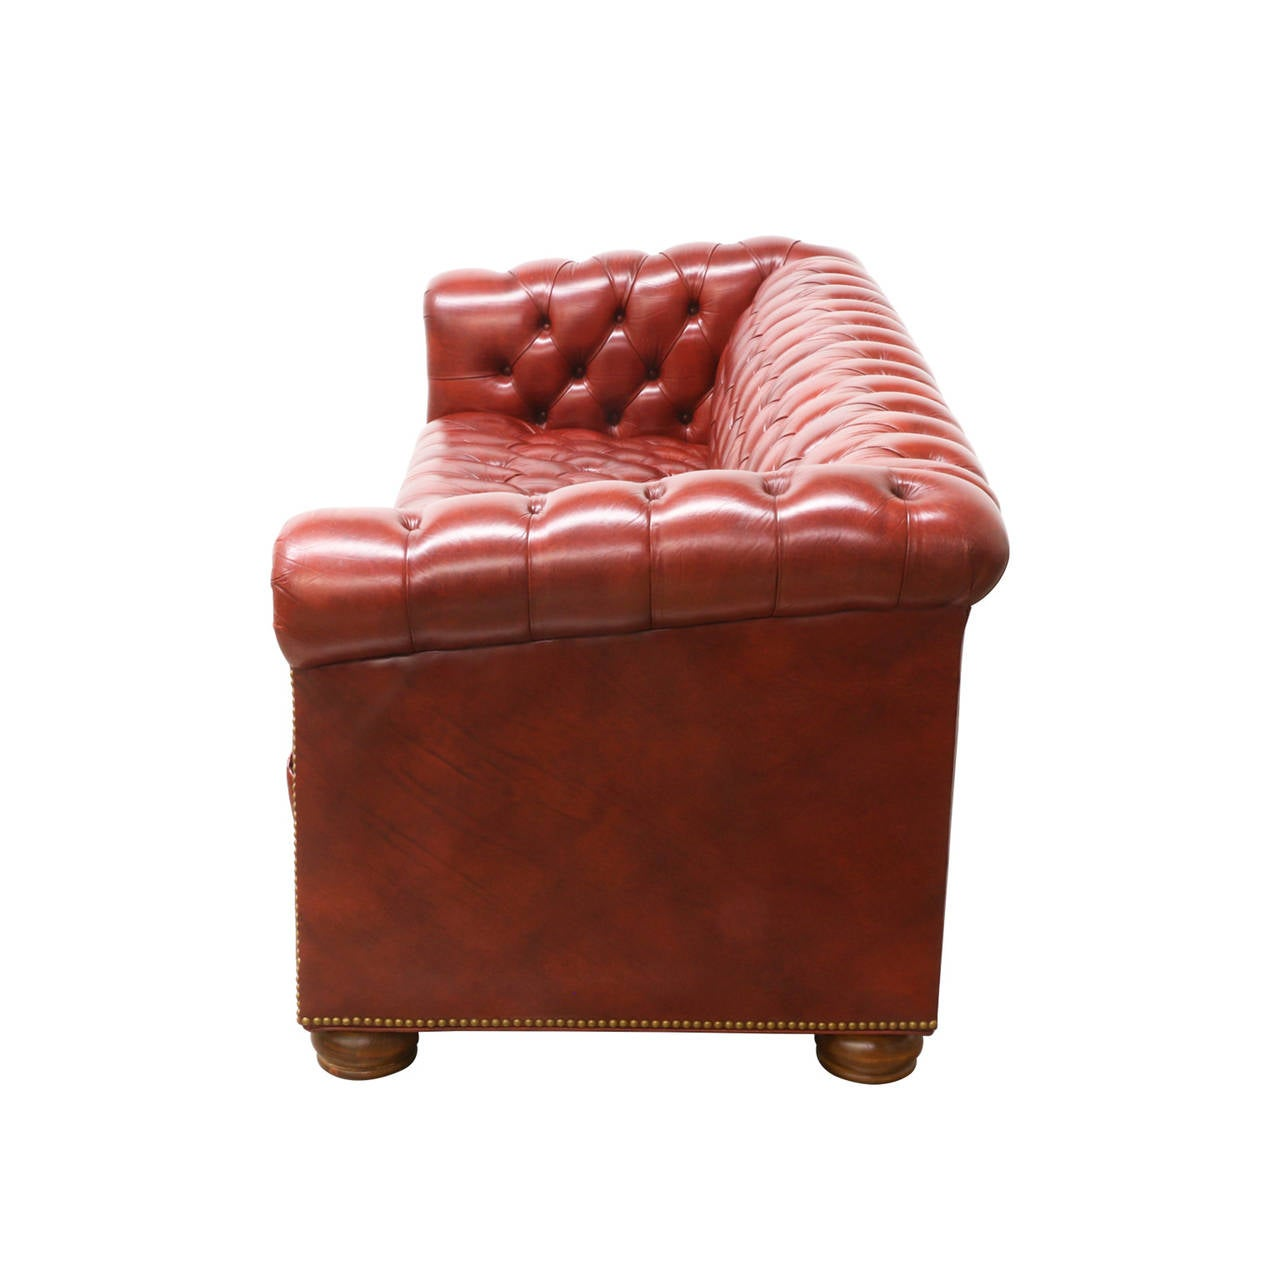 Vintage red leather chesterfield sofa at 1stdibs